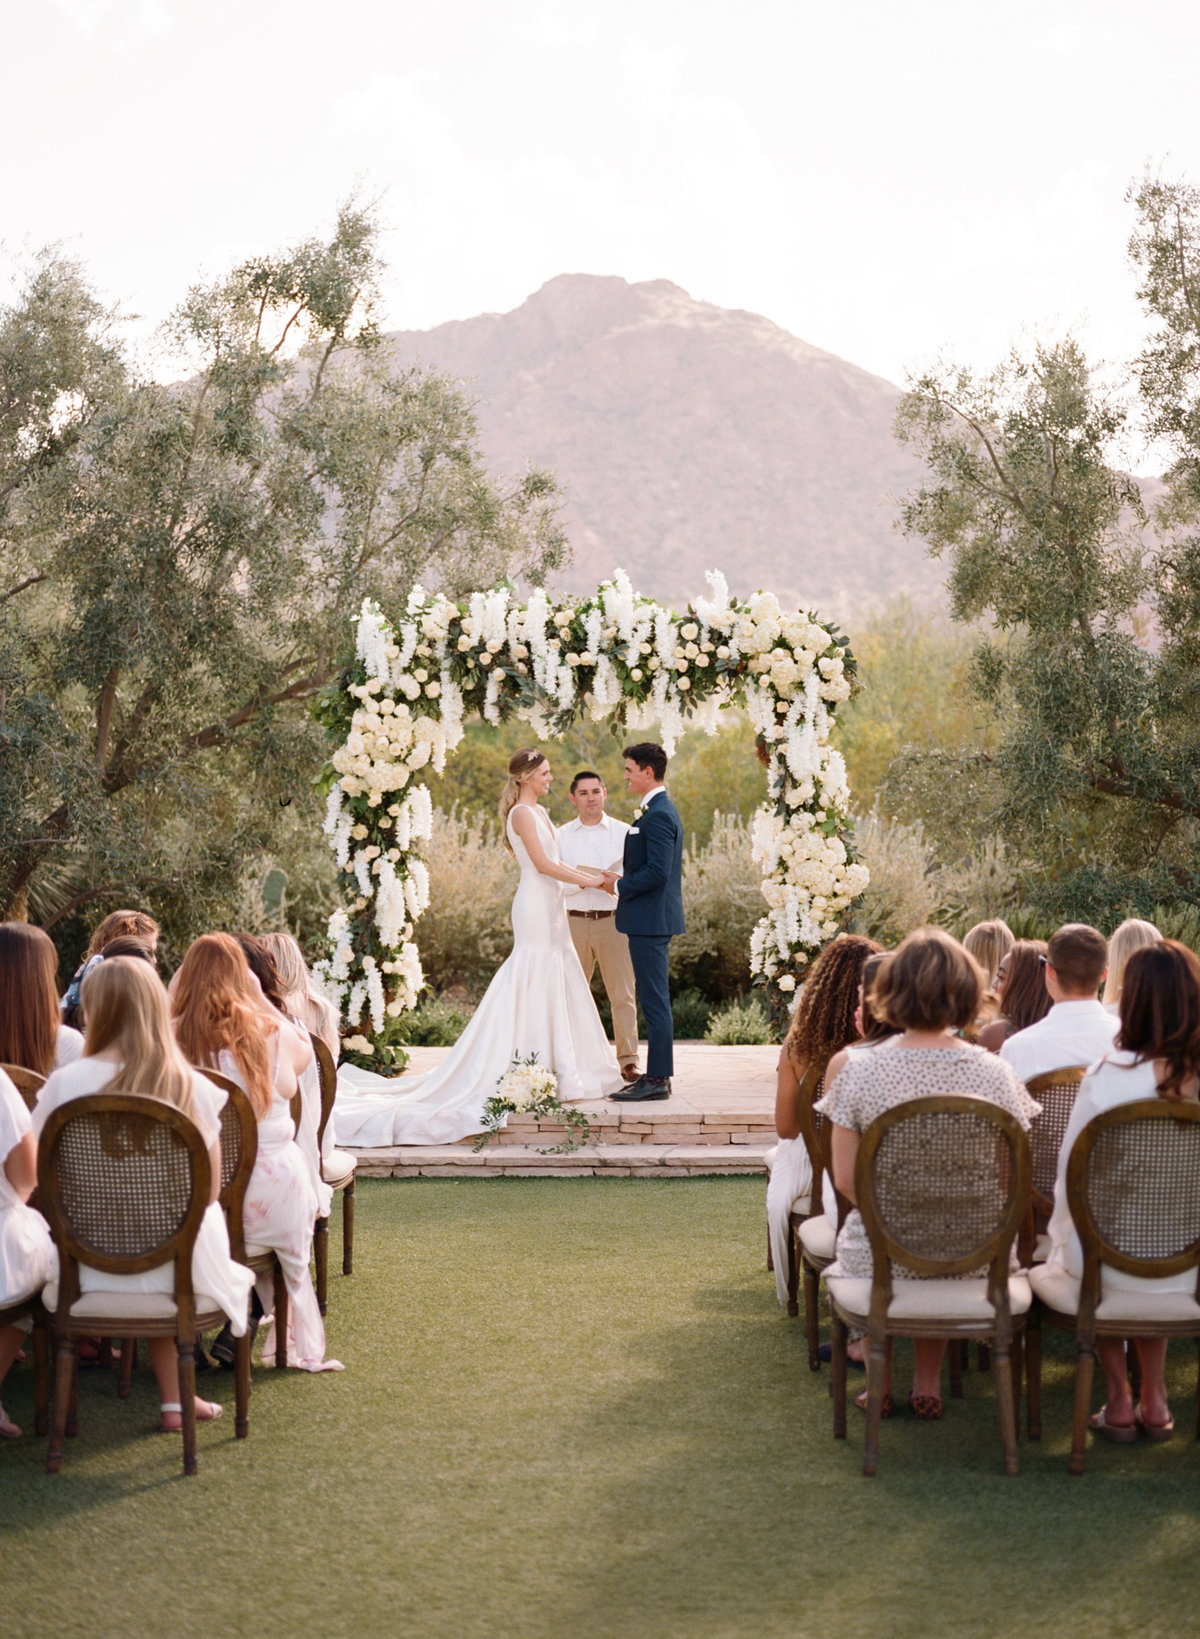 Ash-Simmons-Photography-Heirloom-Opulence-United-Arizona-105